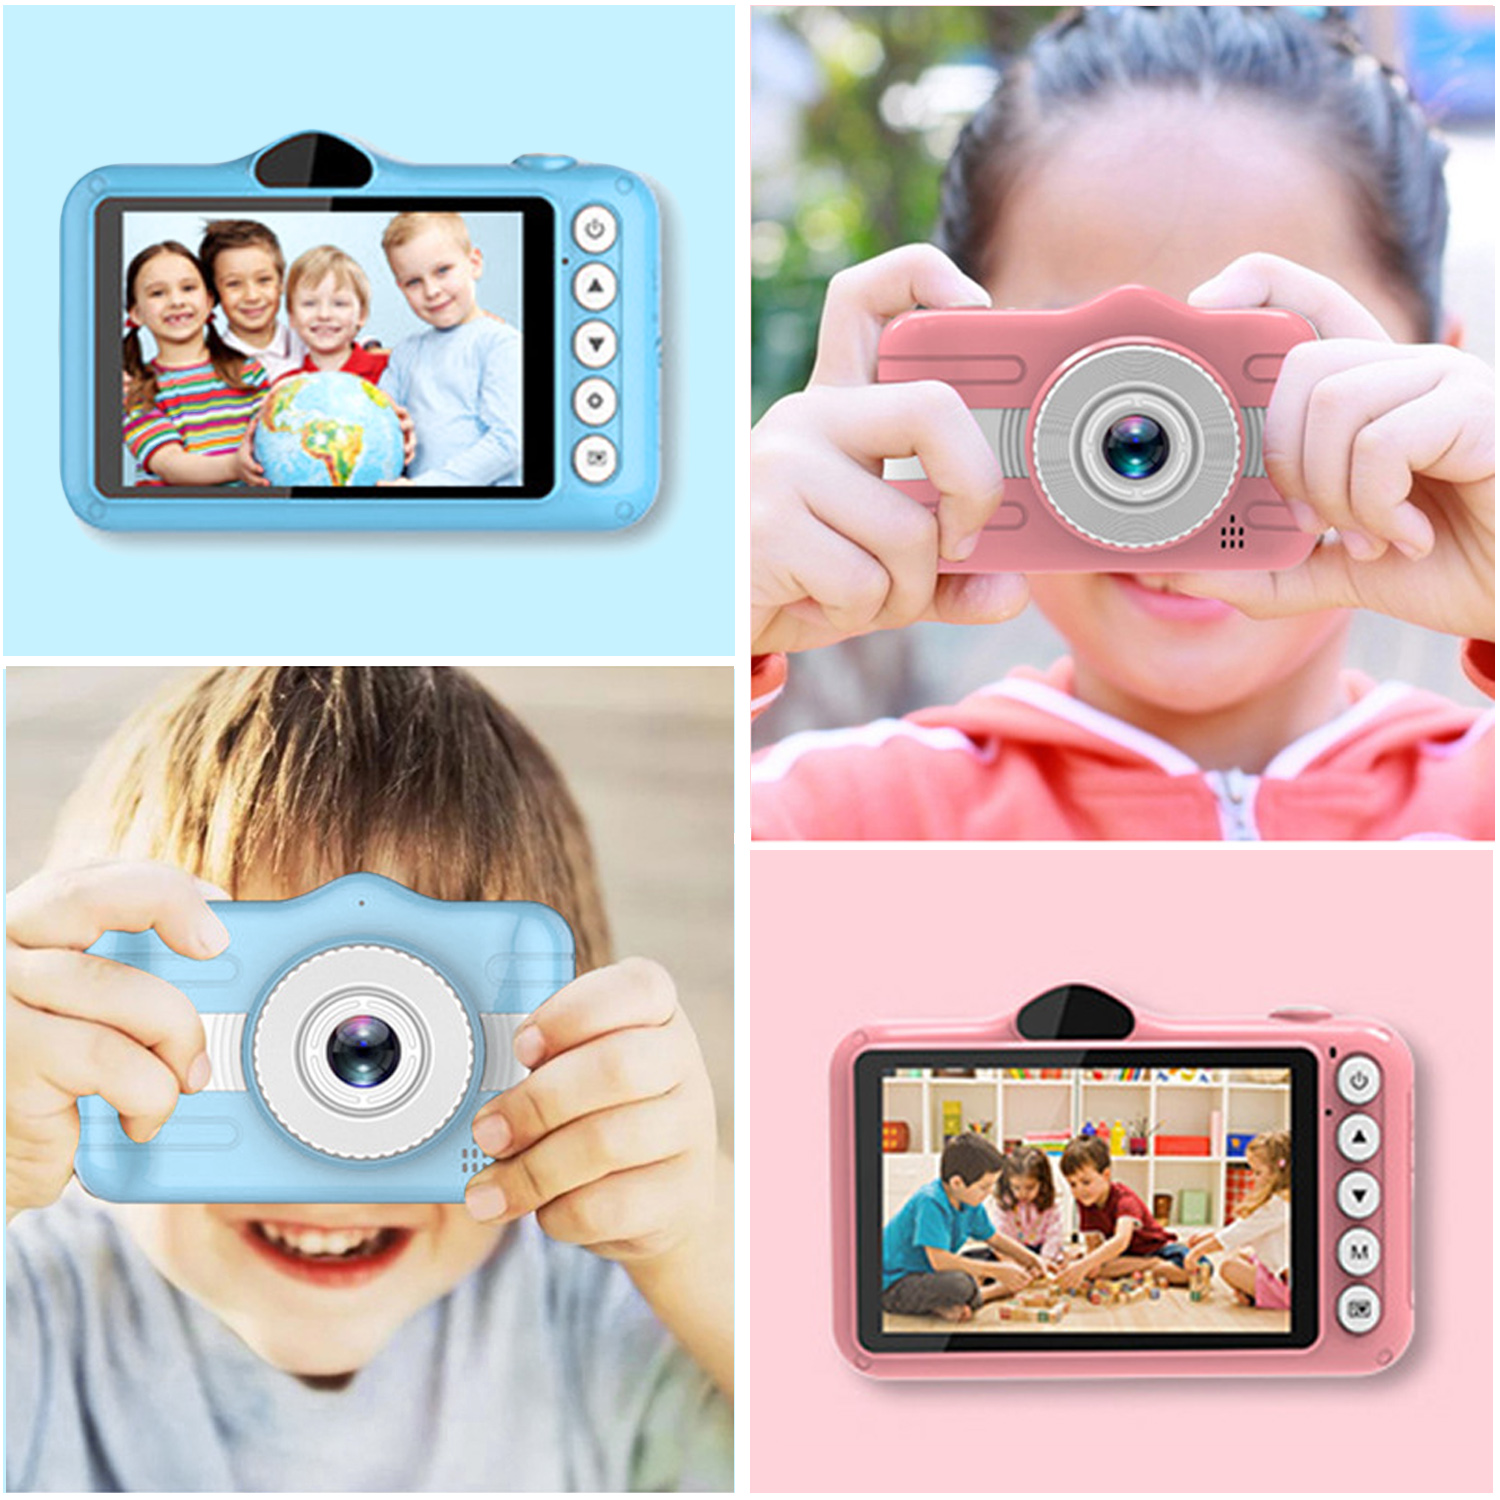 Kids Camera 1080P 800W Digital Camera Rechargeable Video Camcorder With 3.5 Inch IPS Screen For Children Boy Girl Birthday Gifts